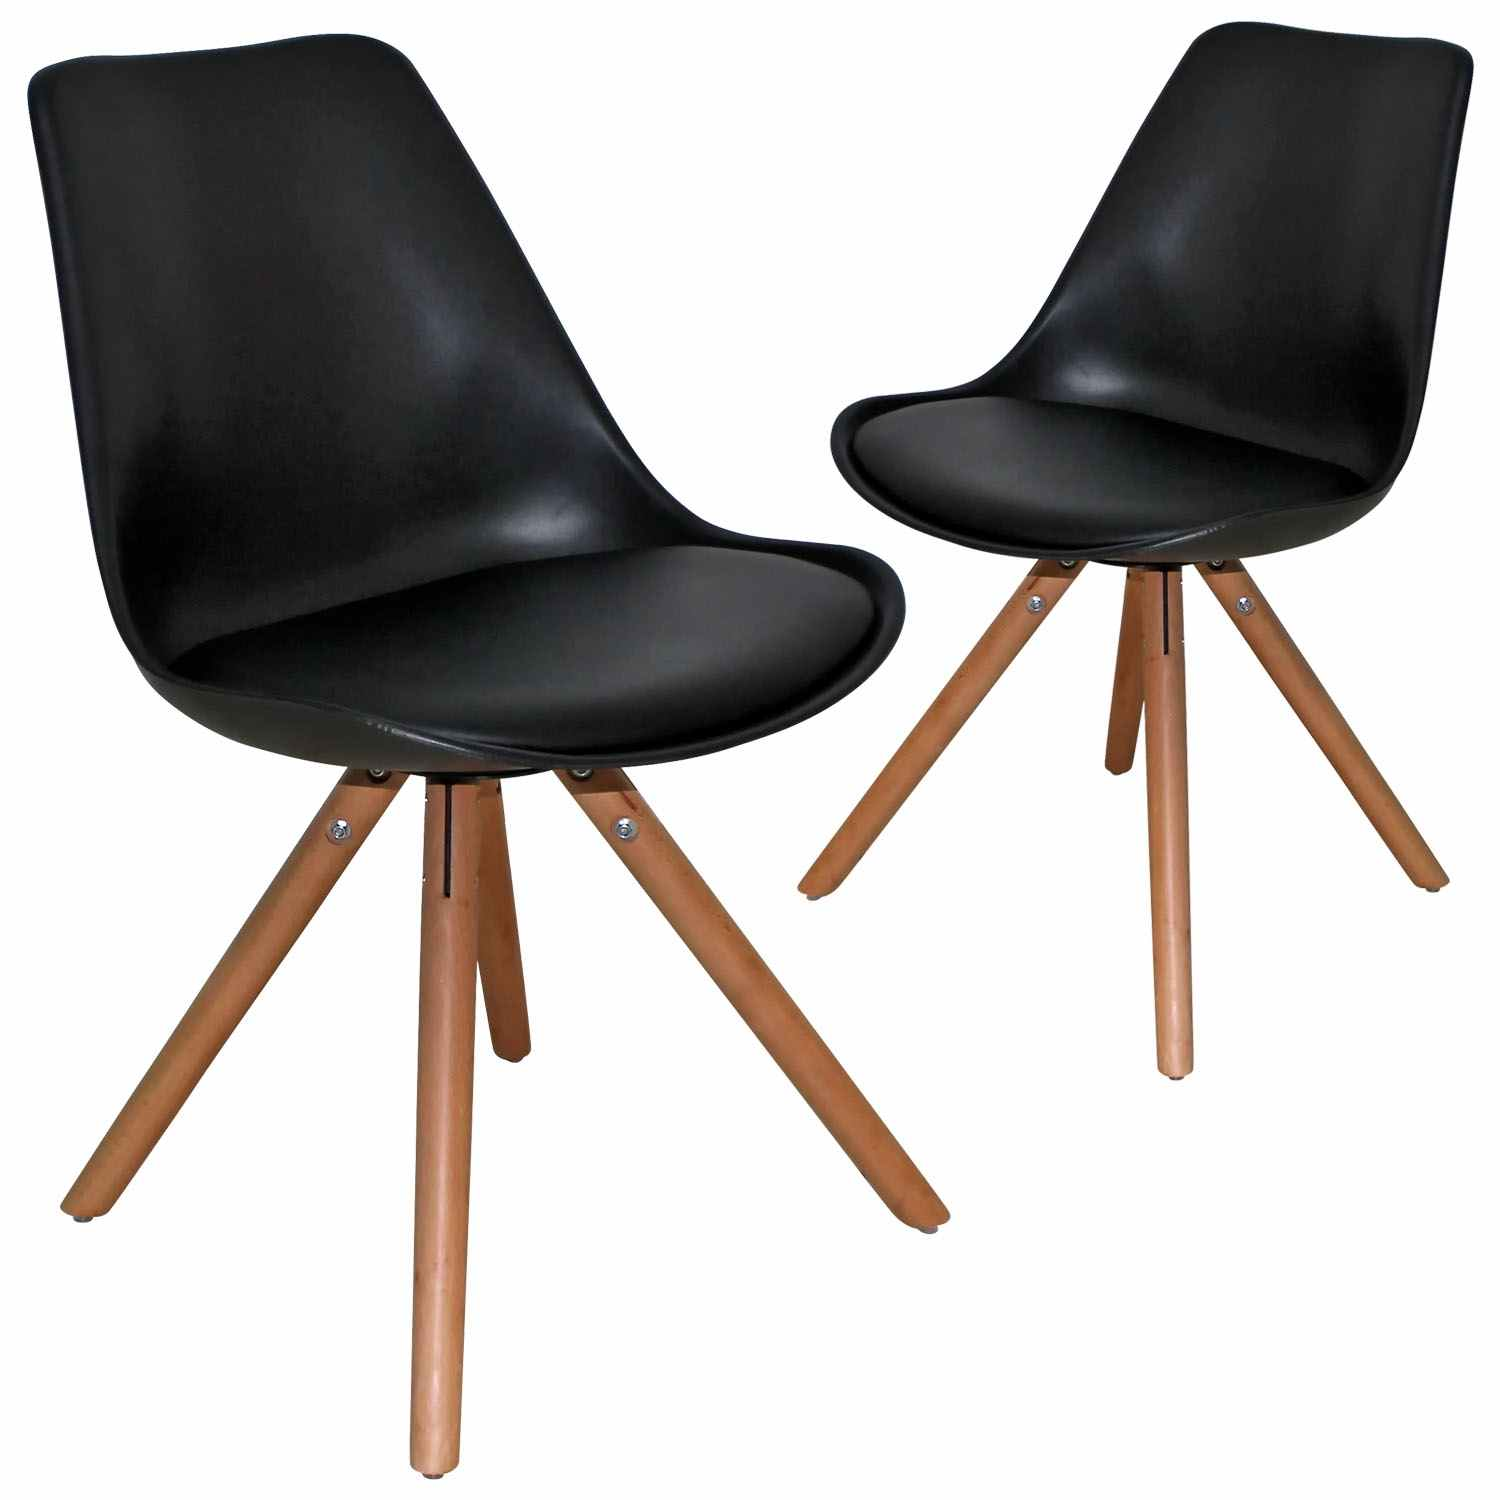 Deco in paris 3 lot de 2 chaises design noir velta velta for Chaise noir design